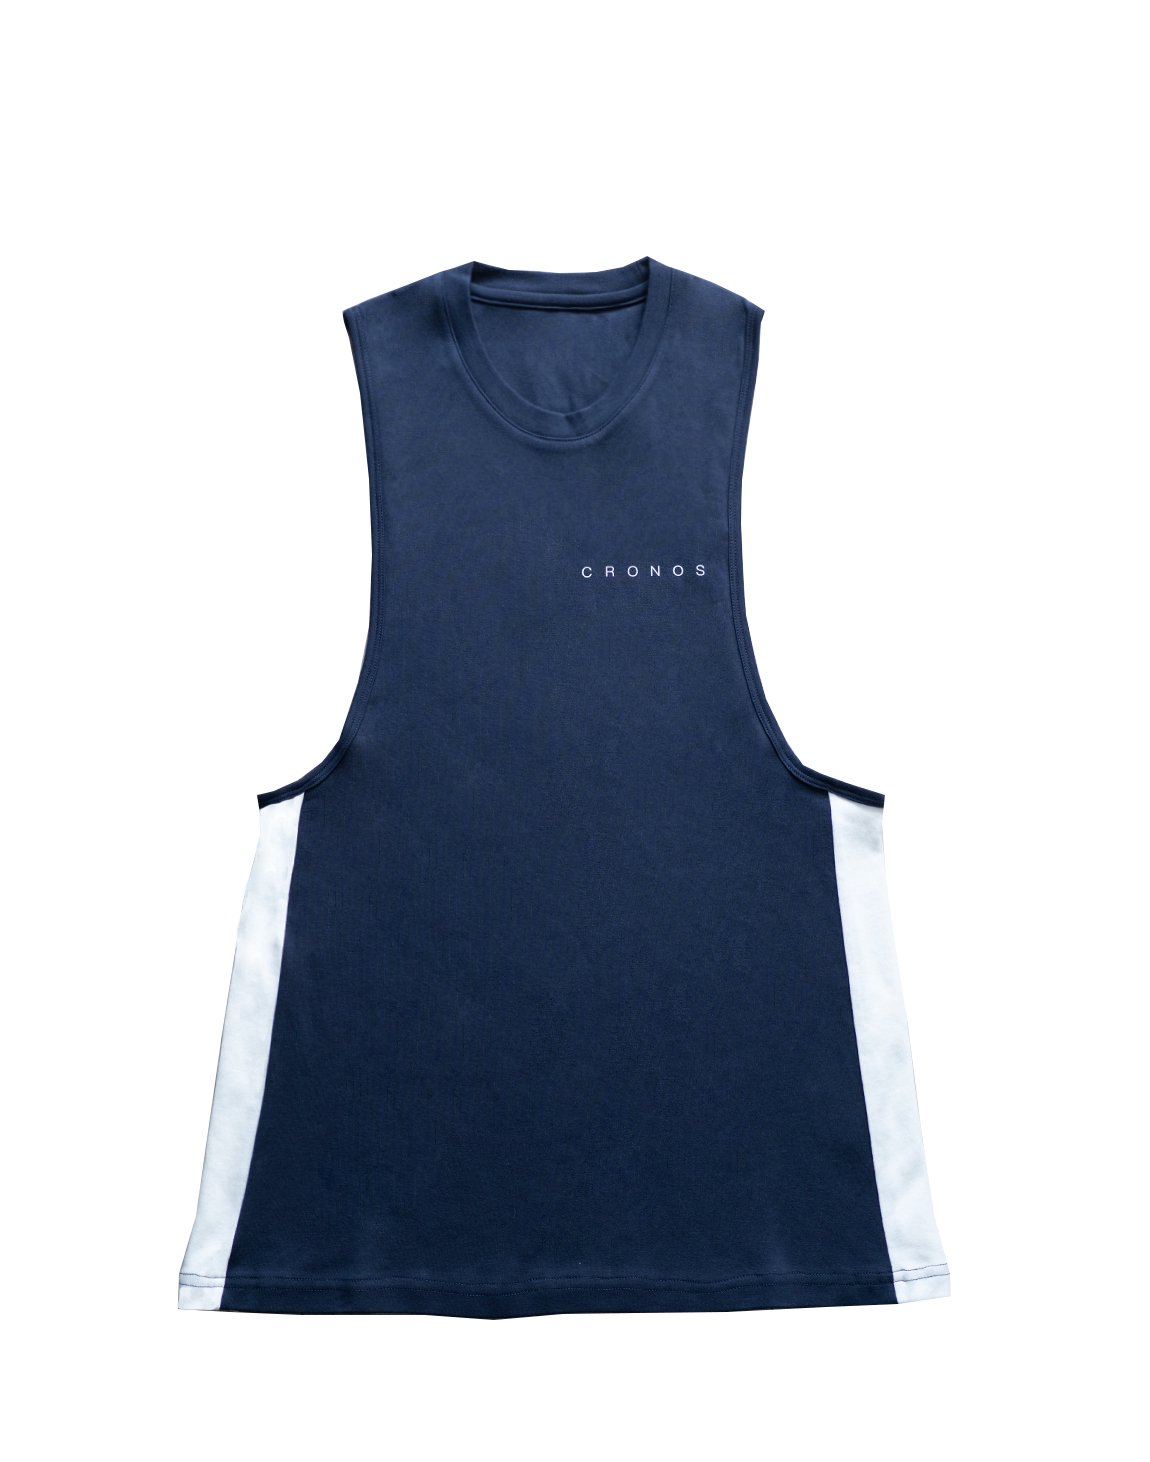 <img class='new_mark_img1' src='https://img.shop-pro.jp/img/new/icons1.gif' style='border:none;display:inline;margin:0px;padding:0px;width:auto;' />FRONT FONT LOGO TANK TOP【NAVY】